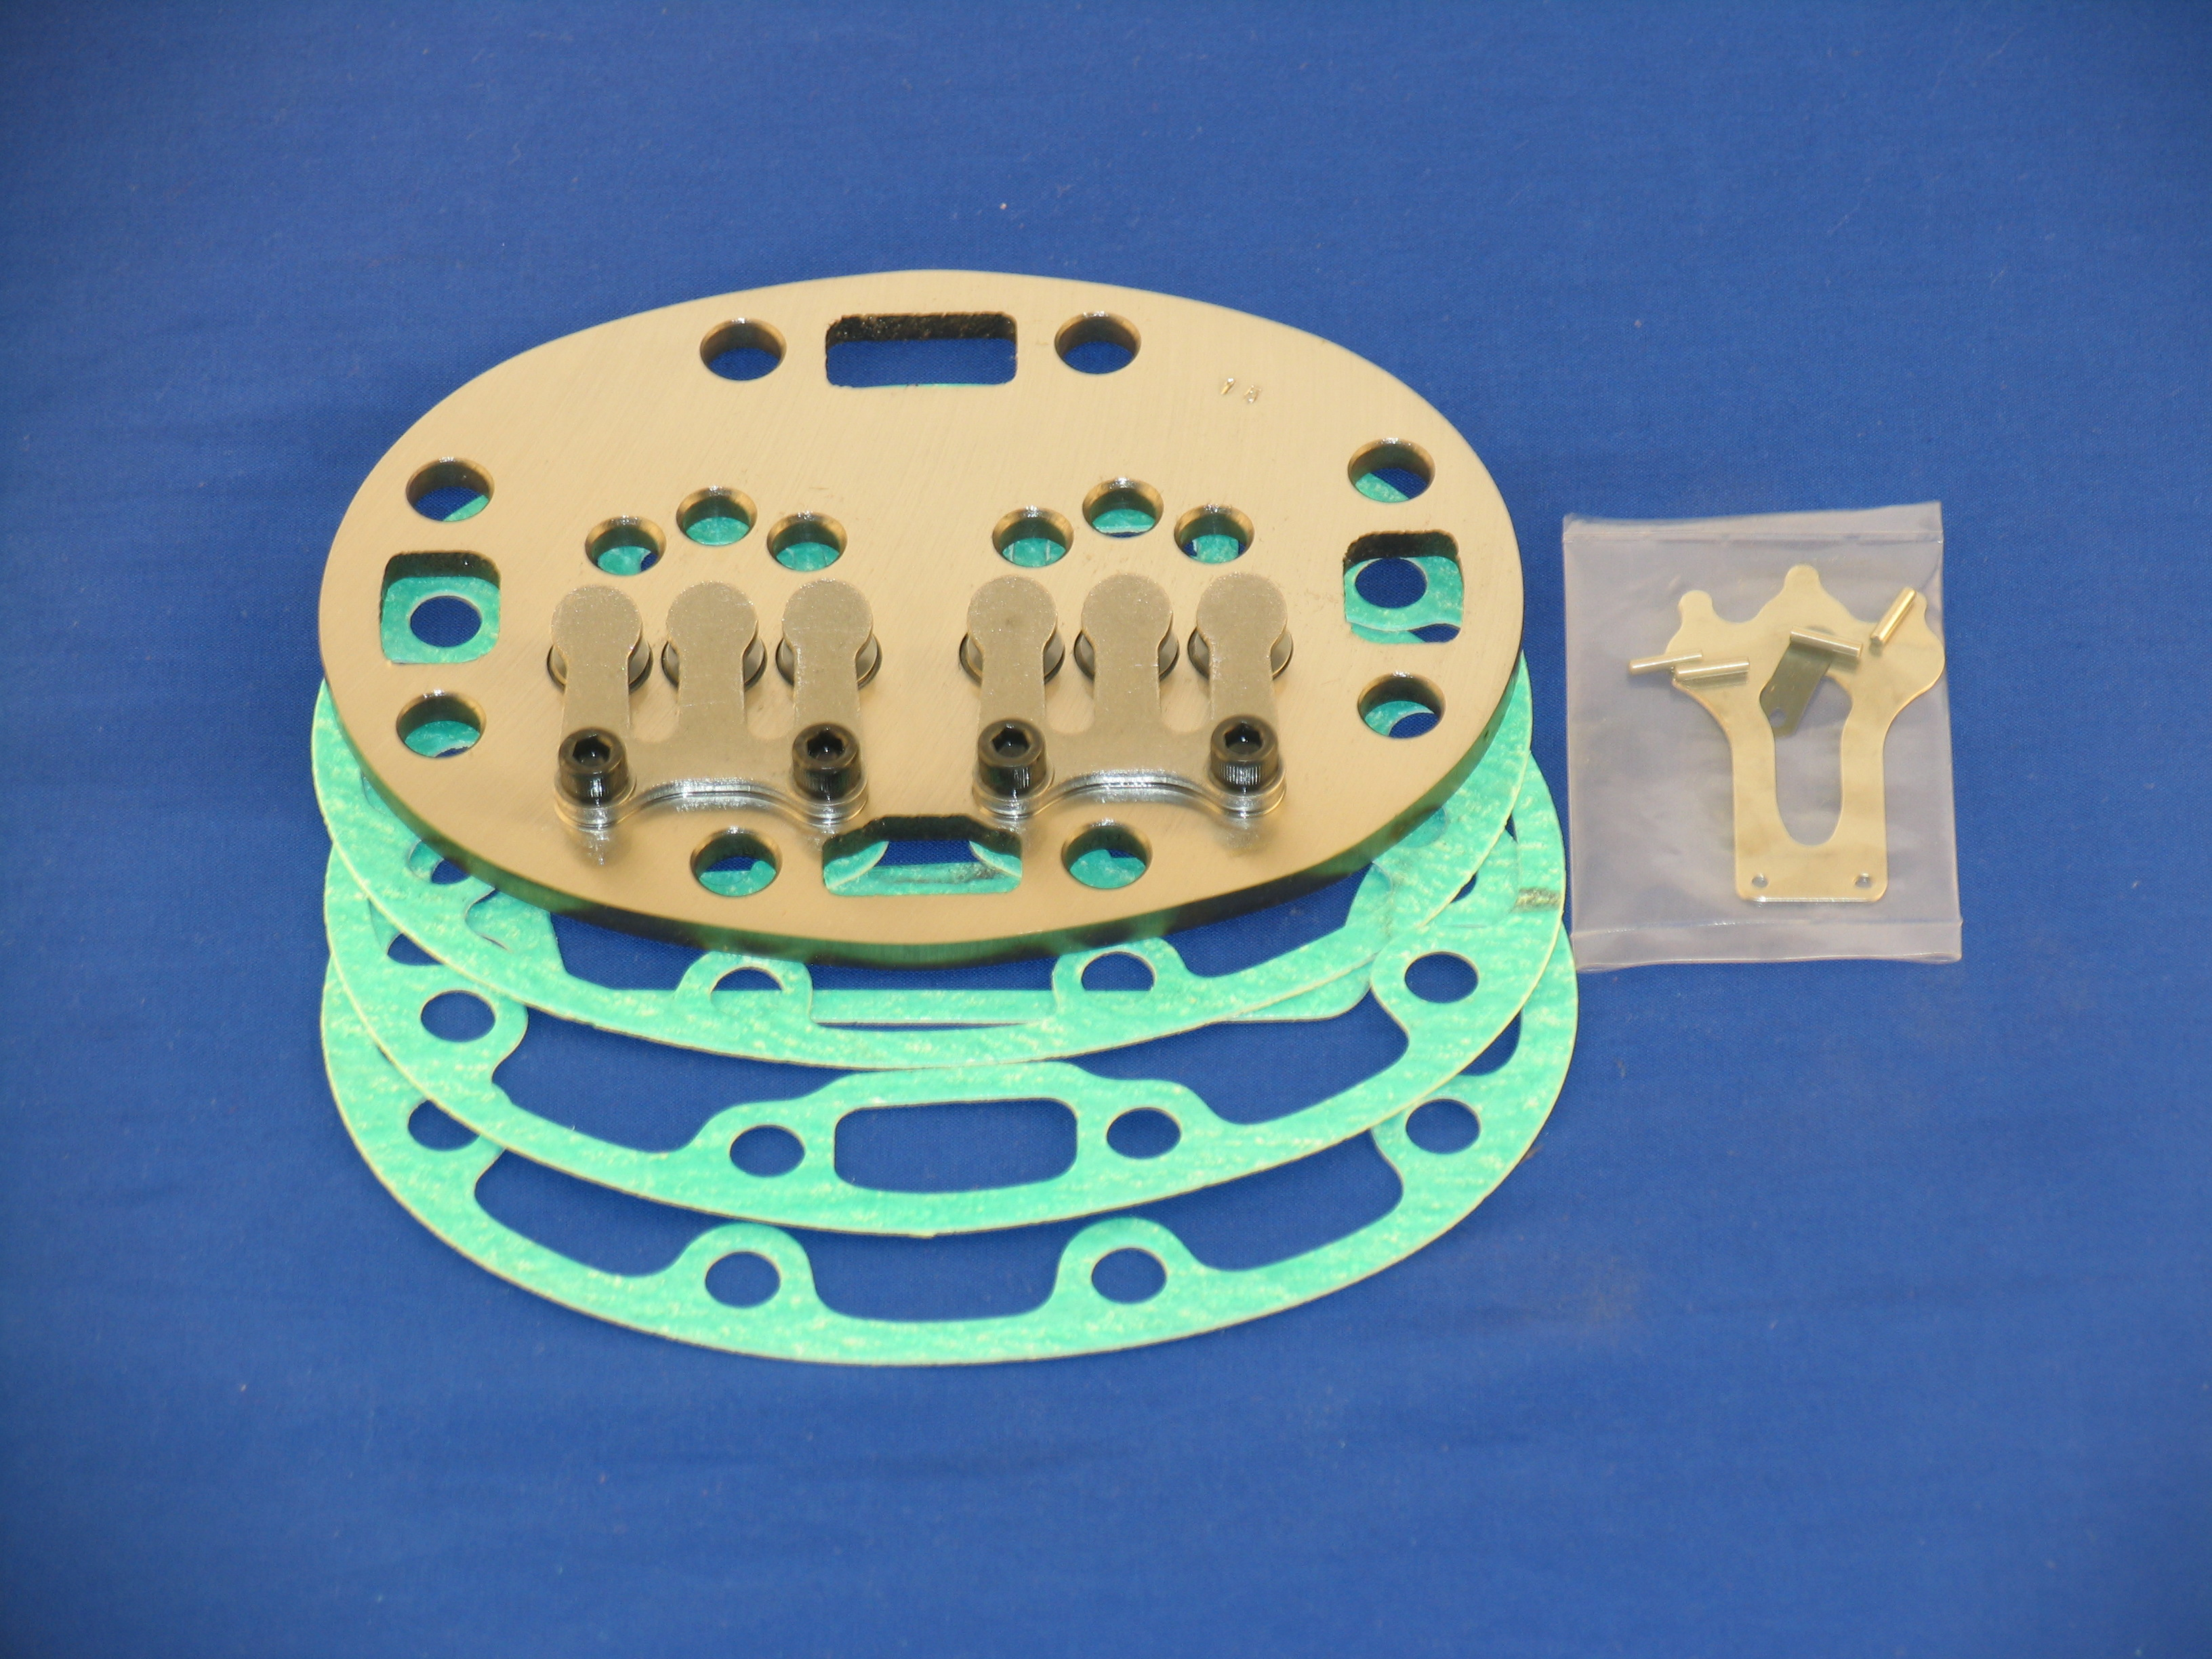 PLT-CR15 Suction Plate Kit; R/N 06DA660-120